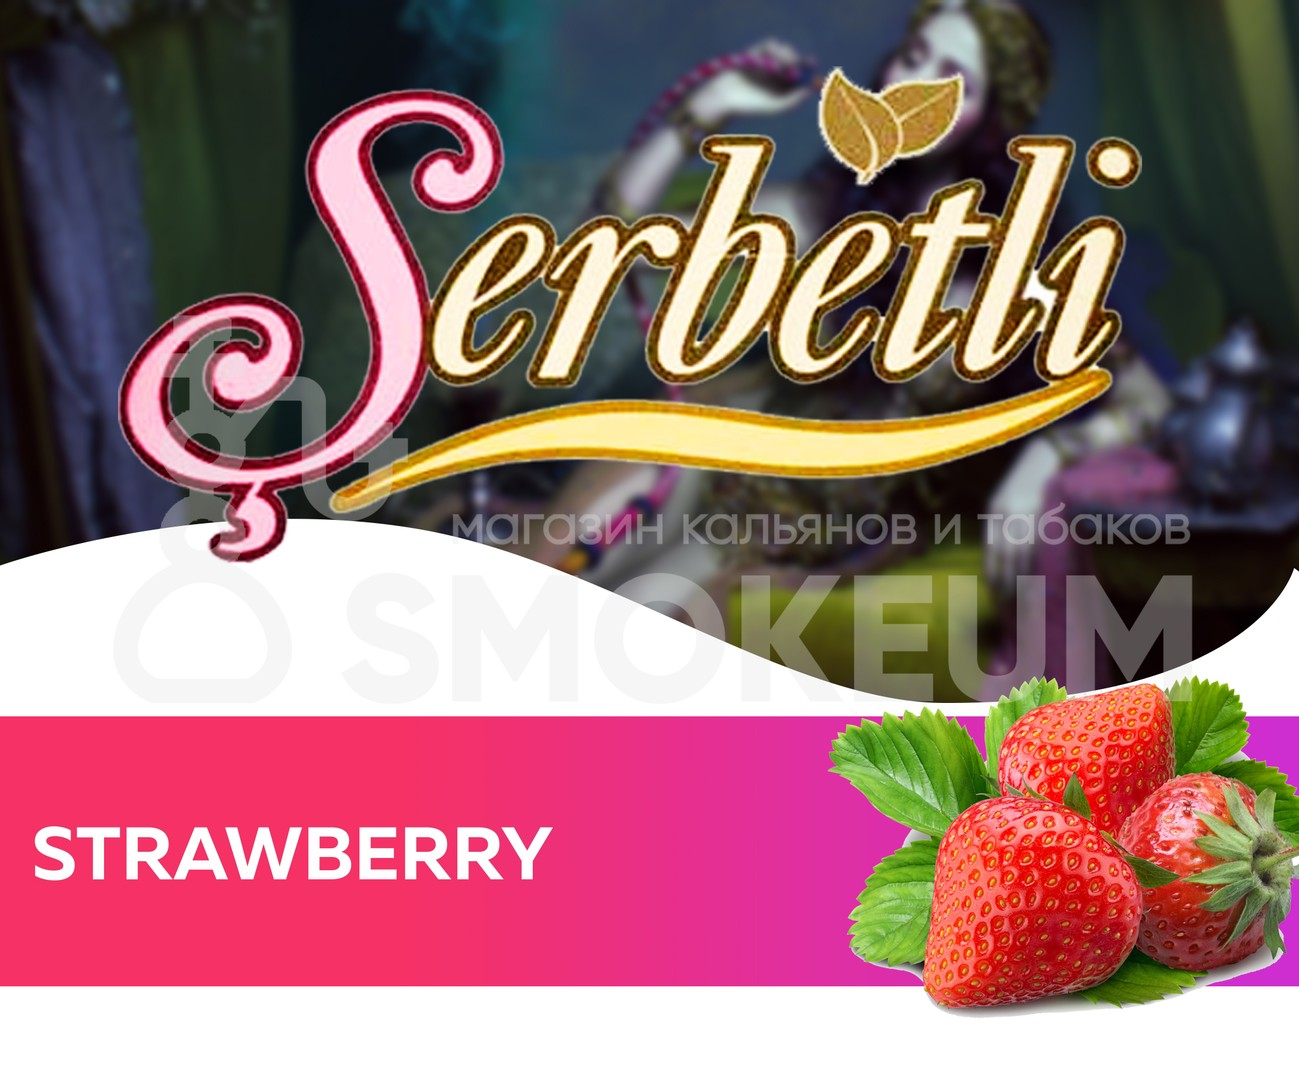 Табак Serbetli - Strawberry (Клубника) 50 гр